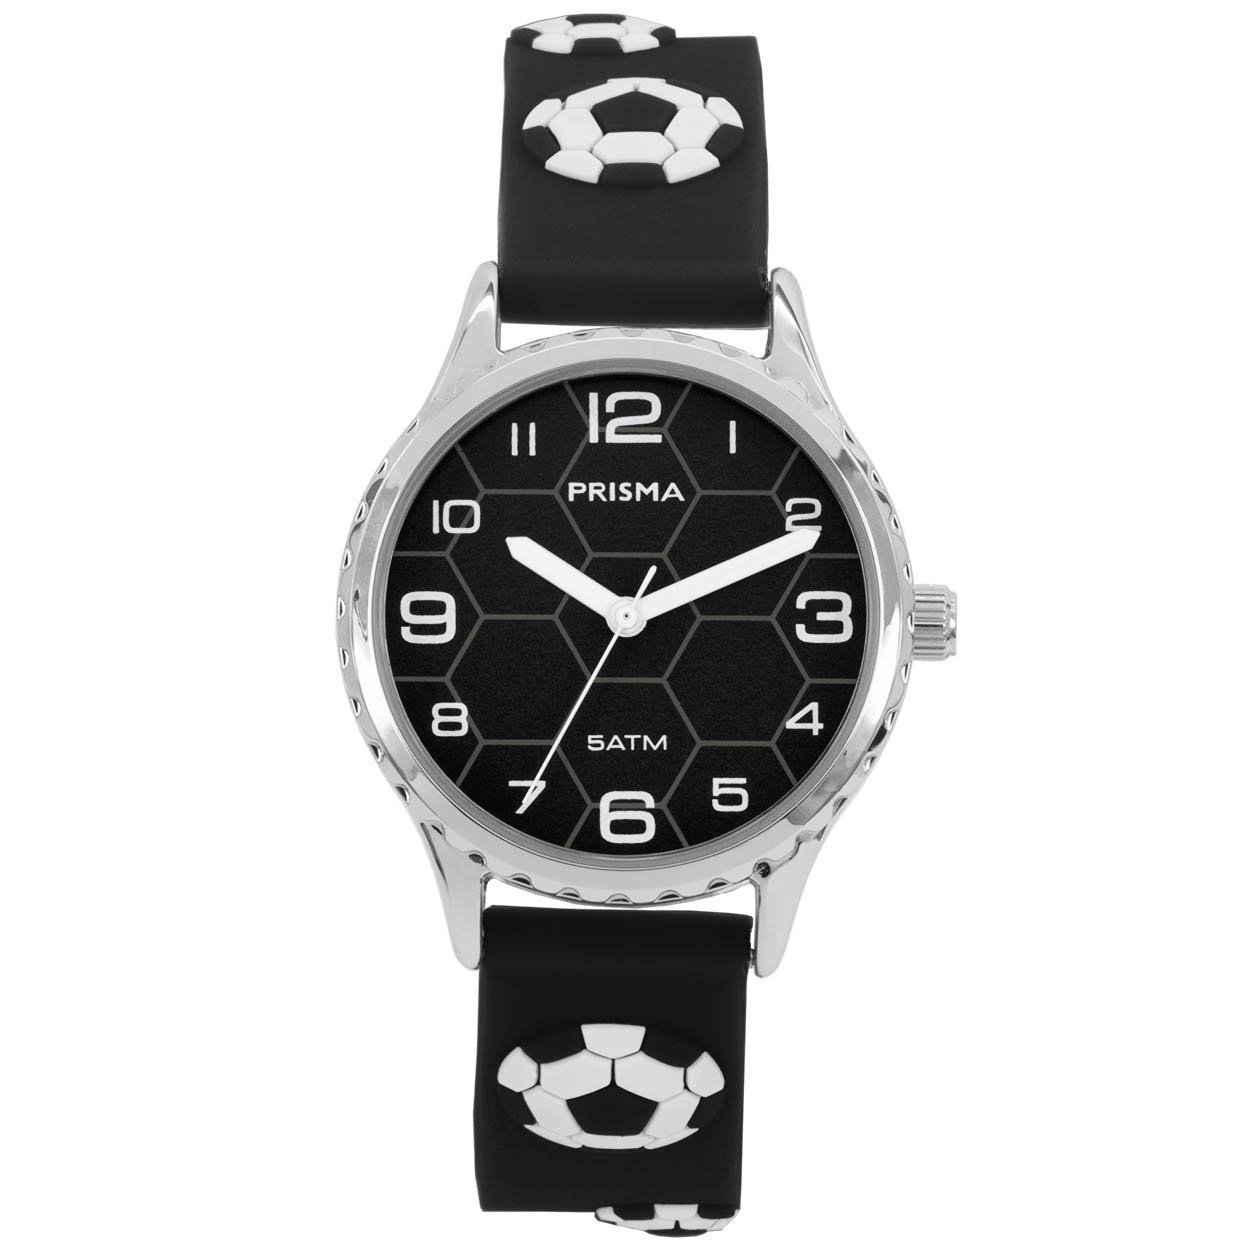 Coolwatch by Prisma CW.350 Kinderhorloge Voetbal staal/siliconen zwart-wit 30 mm